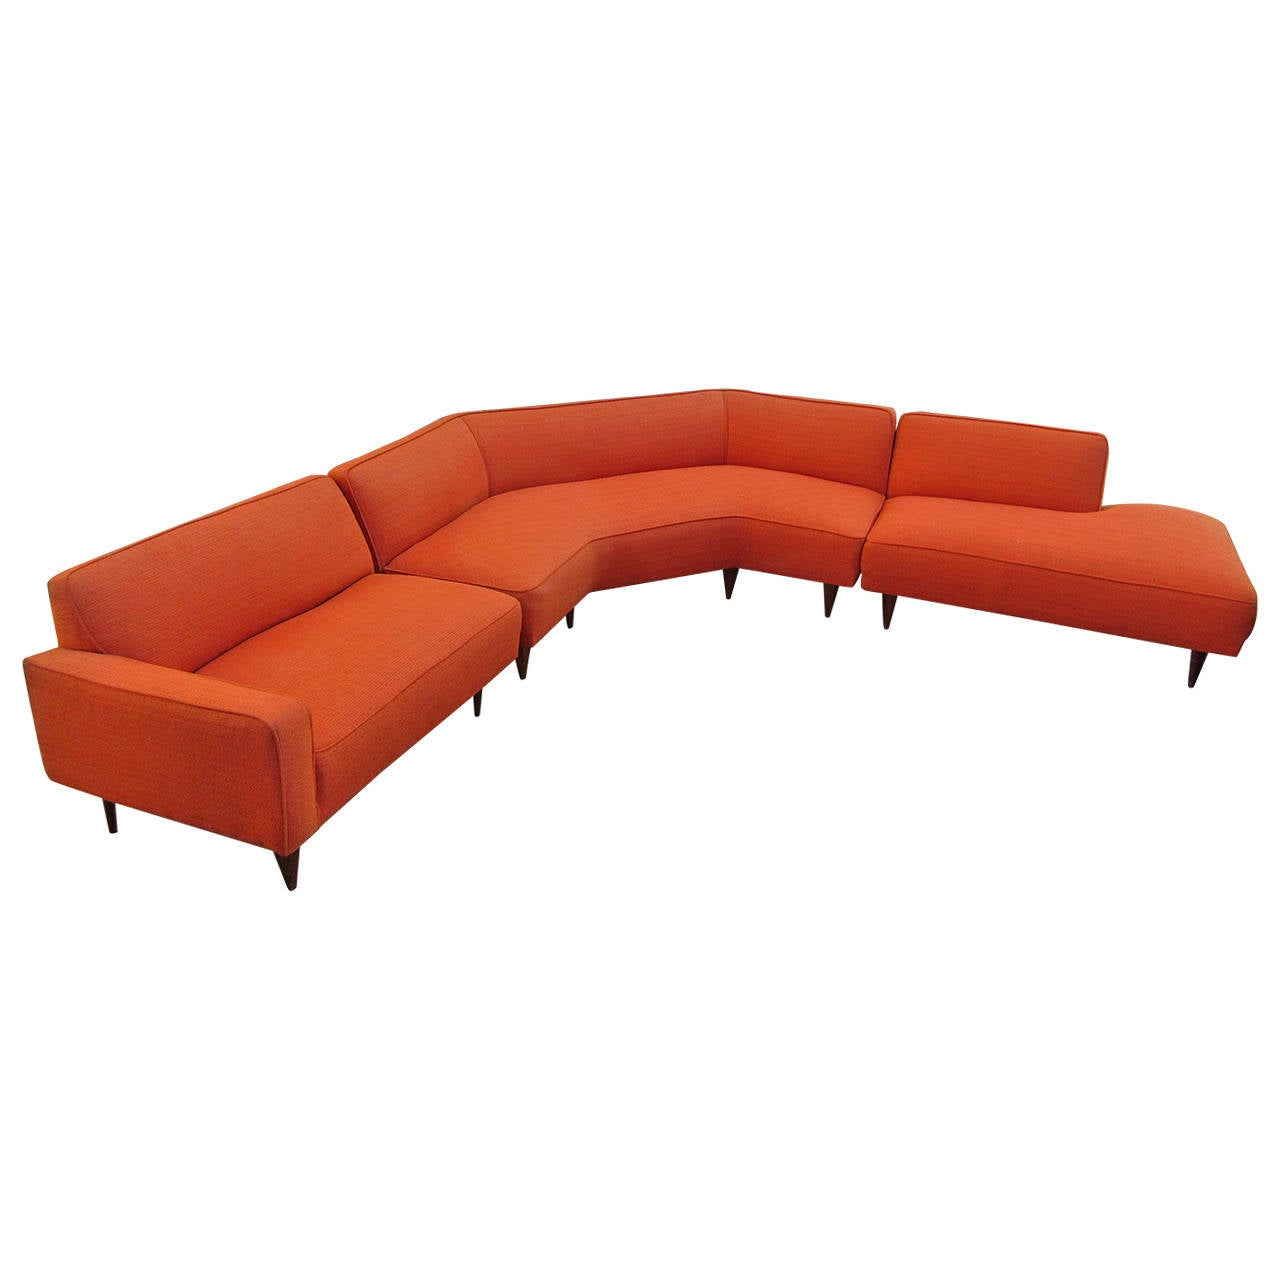 1950s three piece sectional sofa at 1stdibs for Sectional furniture